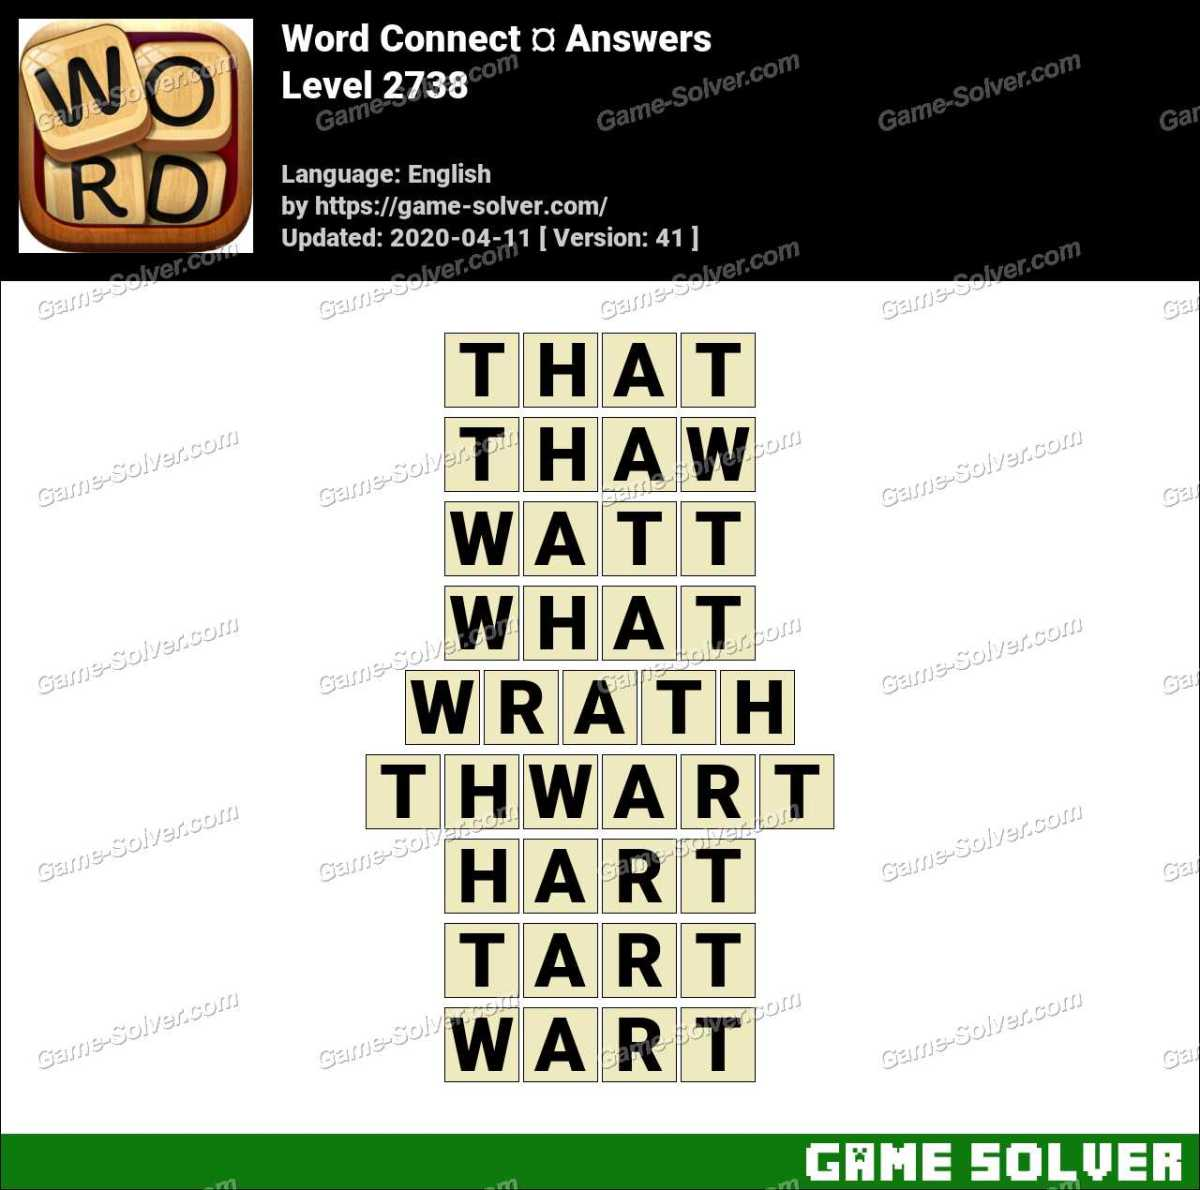 Word Connect Level 2738 Answers